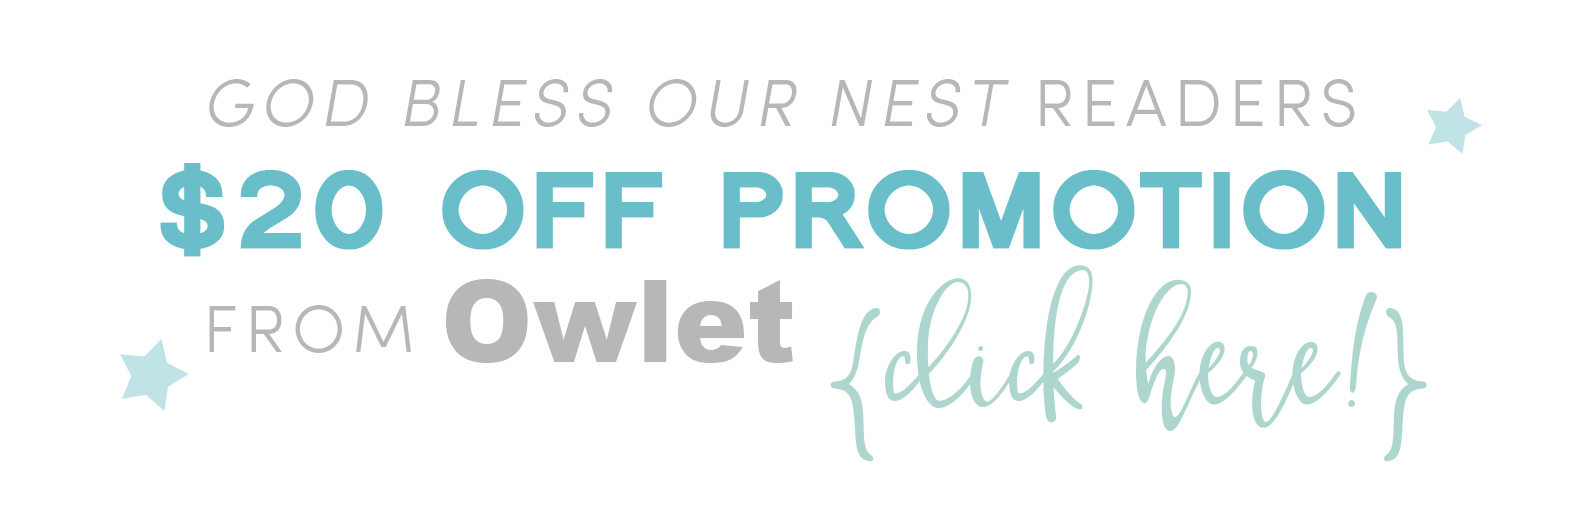 https://store.owletcare.com/10043036/checkouts/e3b17f11ba047f9bd18c6c6525ccee1f?discount=god_bless_our_nest_20&n=God+Bless+{Our}+Nest